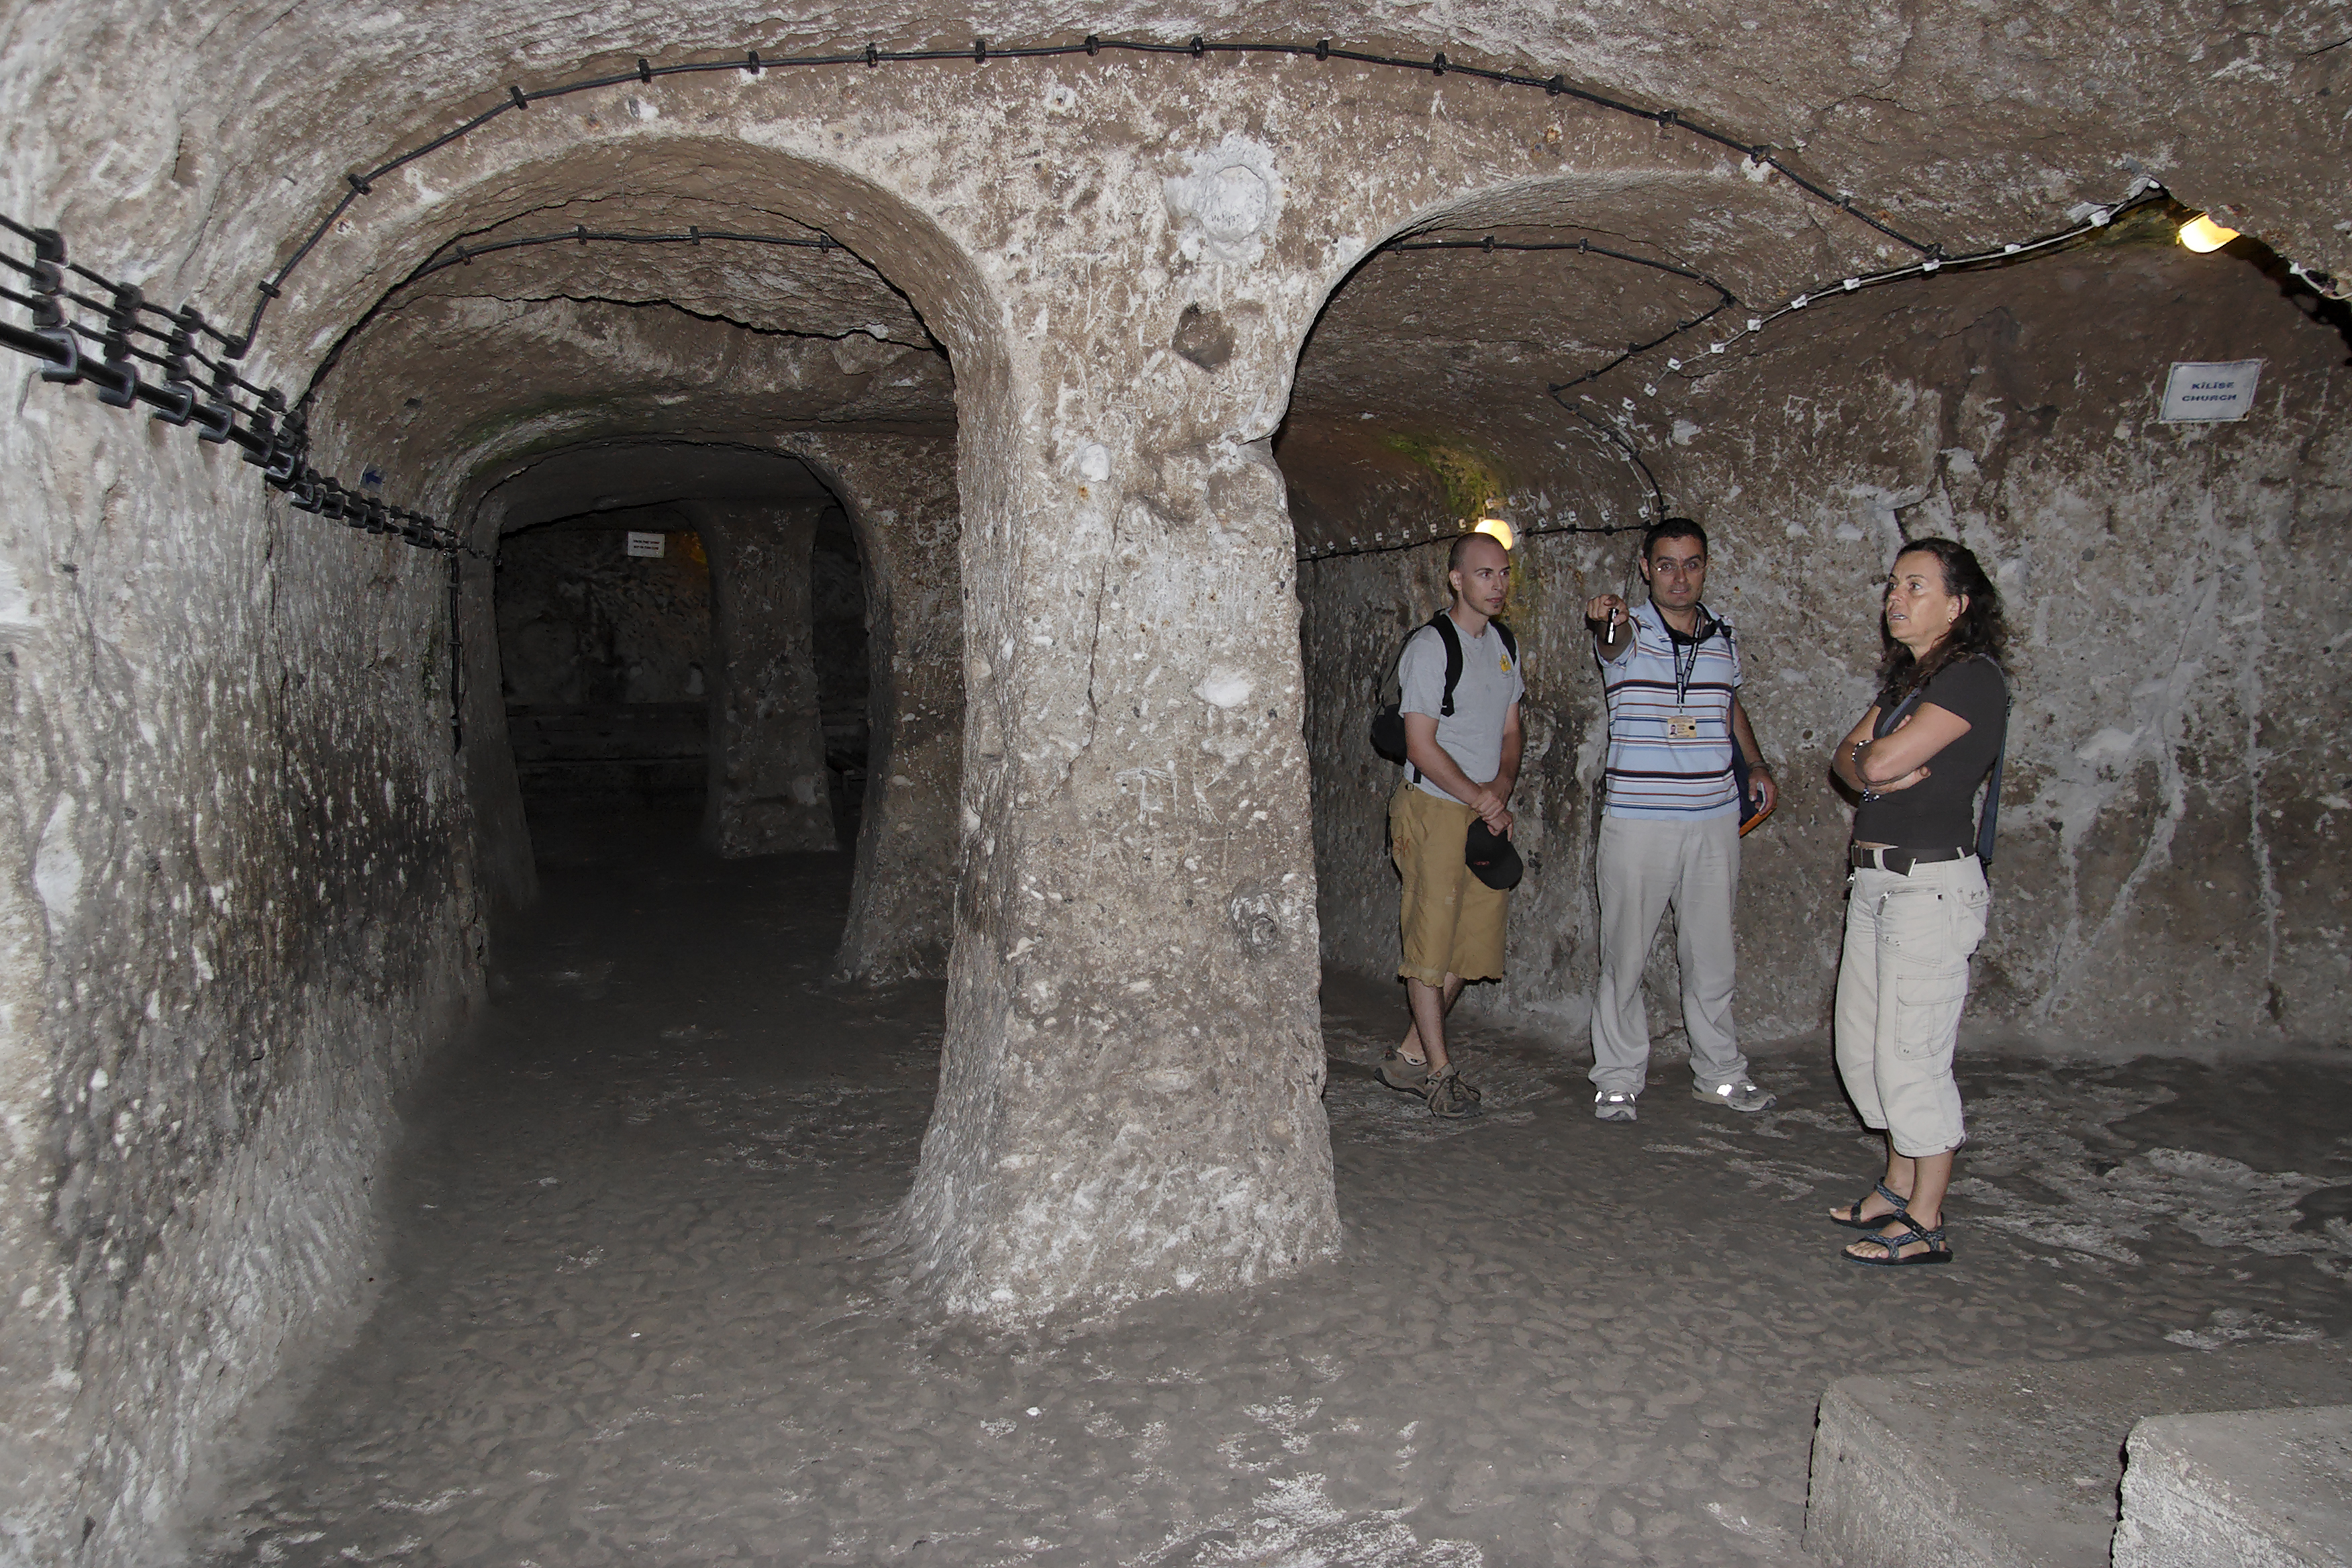 Derinkuyu underground city, Cappadocia, Turkey, Derinkuyu Turkey.jpg - Derinkuyu underground city, Cappadocia, Turkey